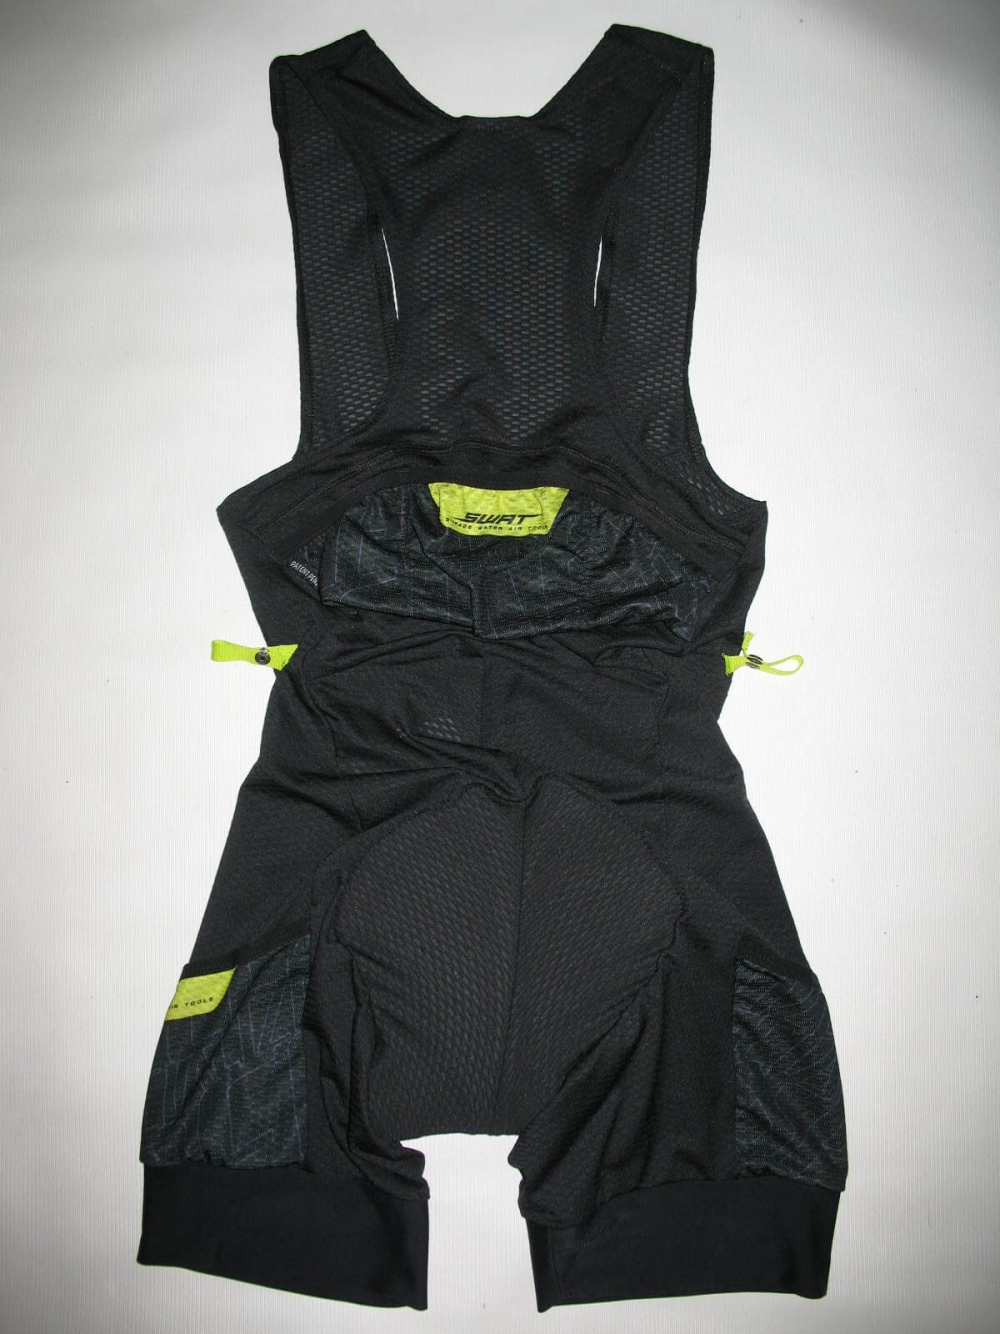 Велошорты SPECIALIZED swat bib shorts (размер 30/S) - 8